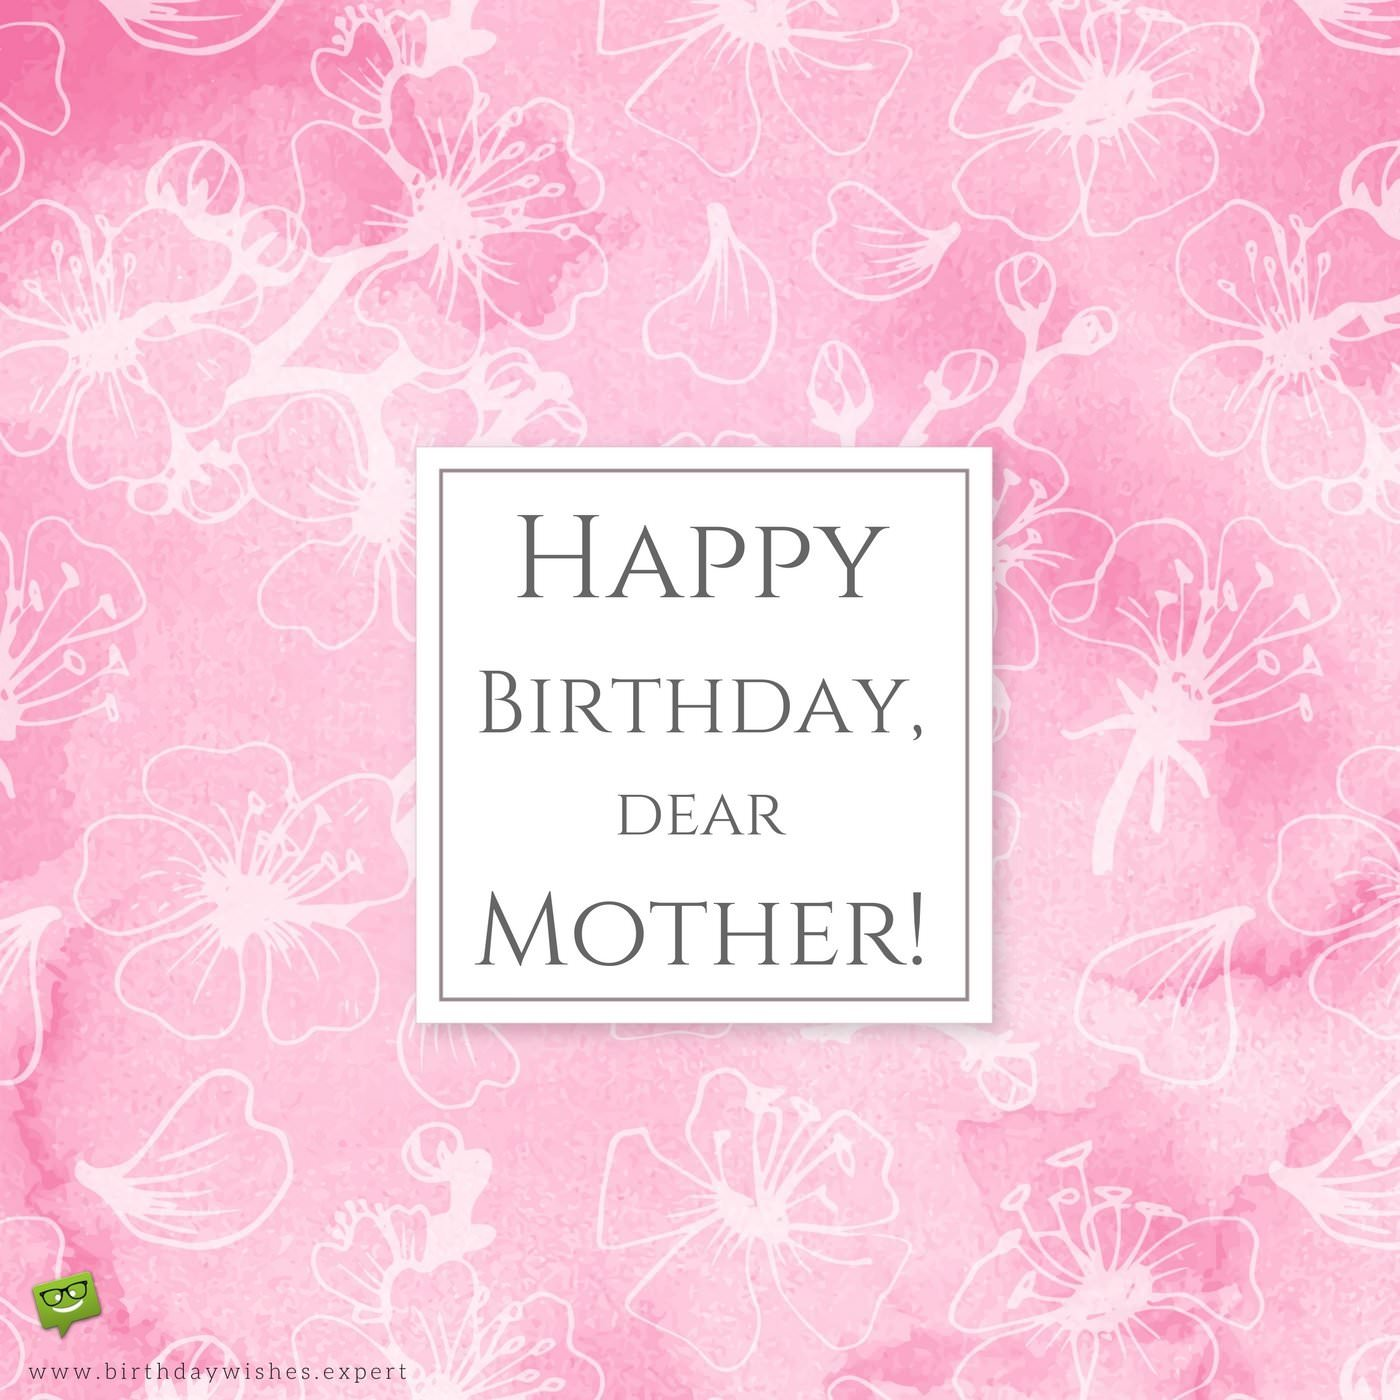 Happy Birthday Dear Mother